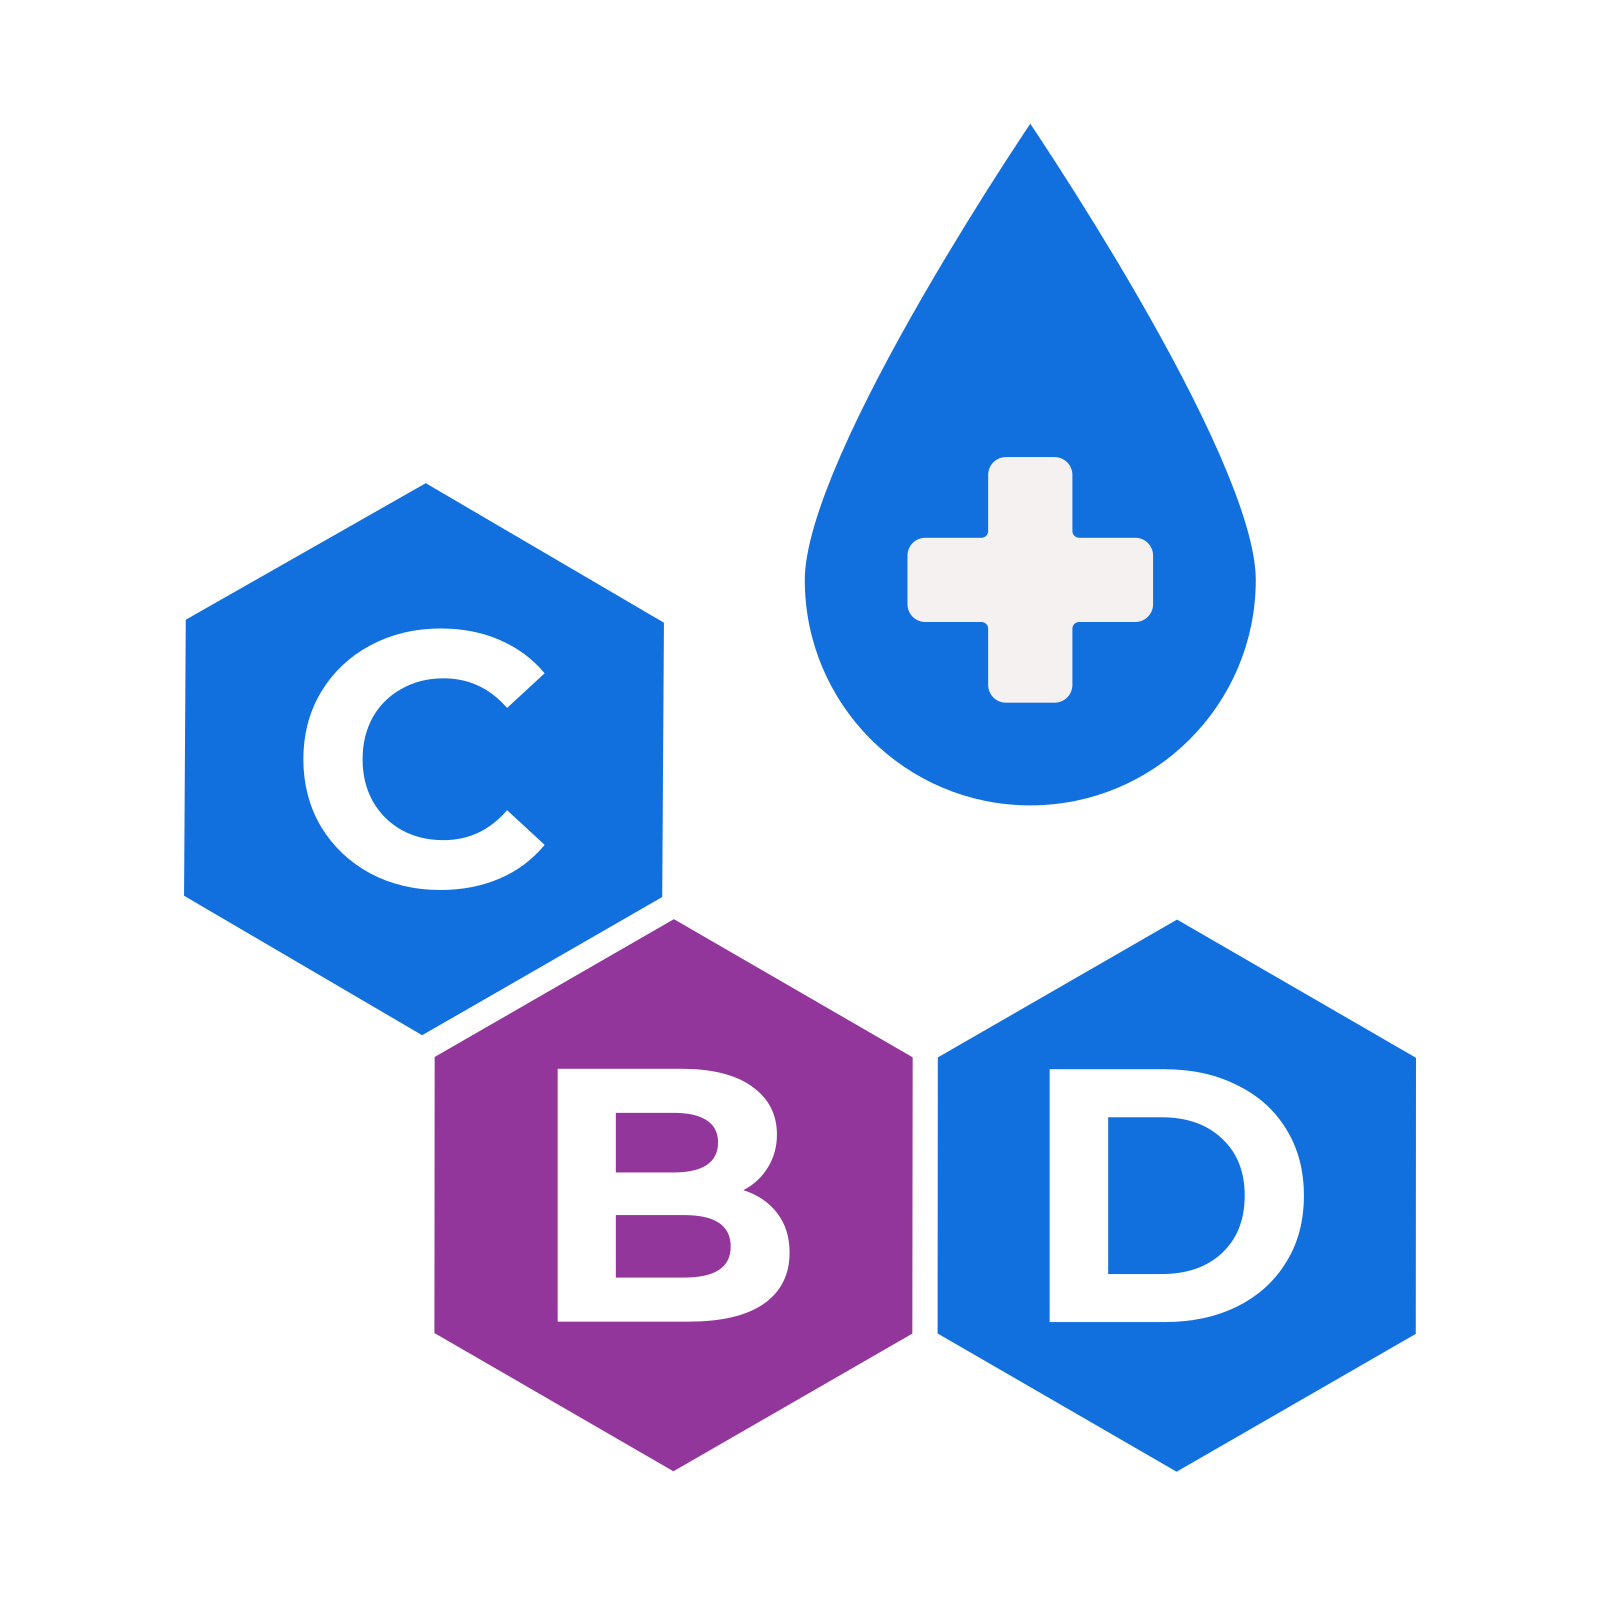 logo cbd shop one final white logo